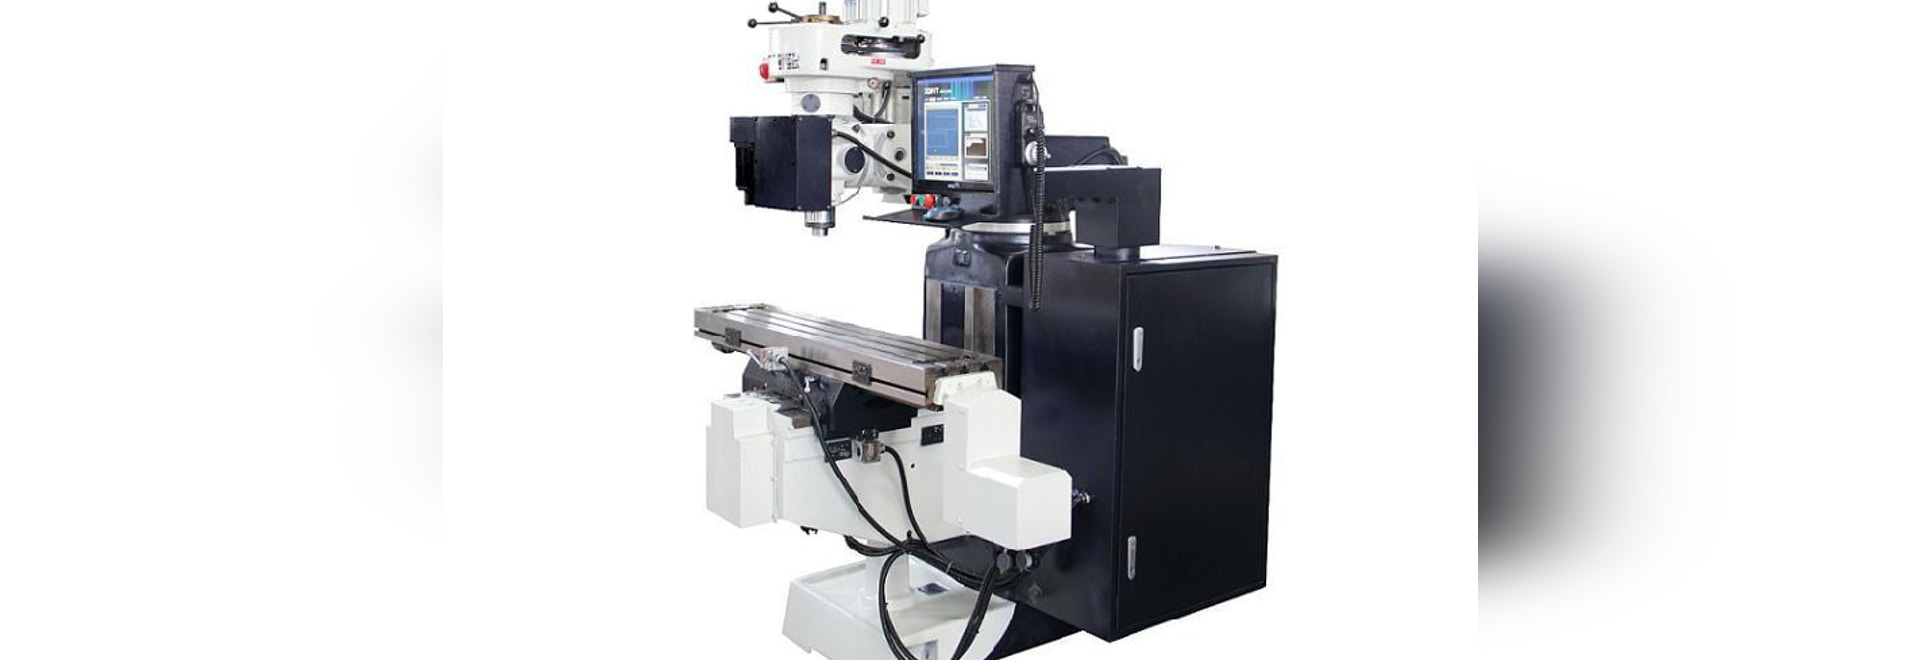 Joint Brand 3 axis GSK controller CNC Milling Machine for sales